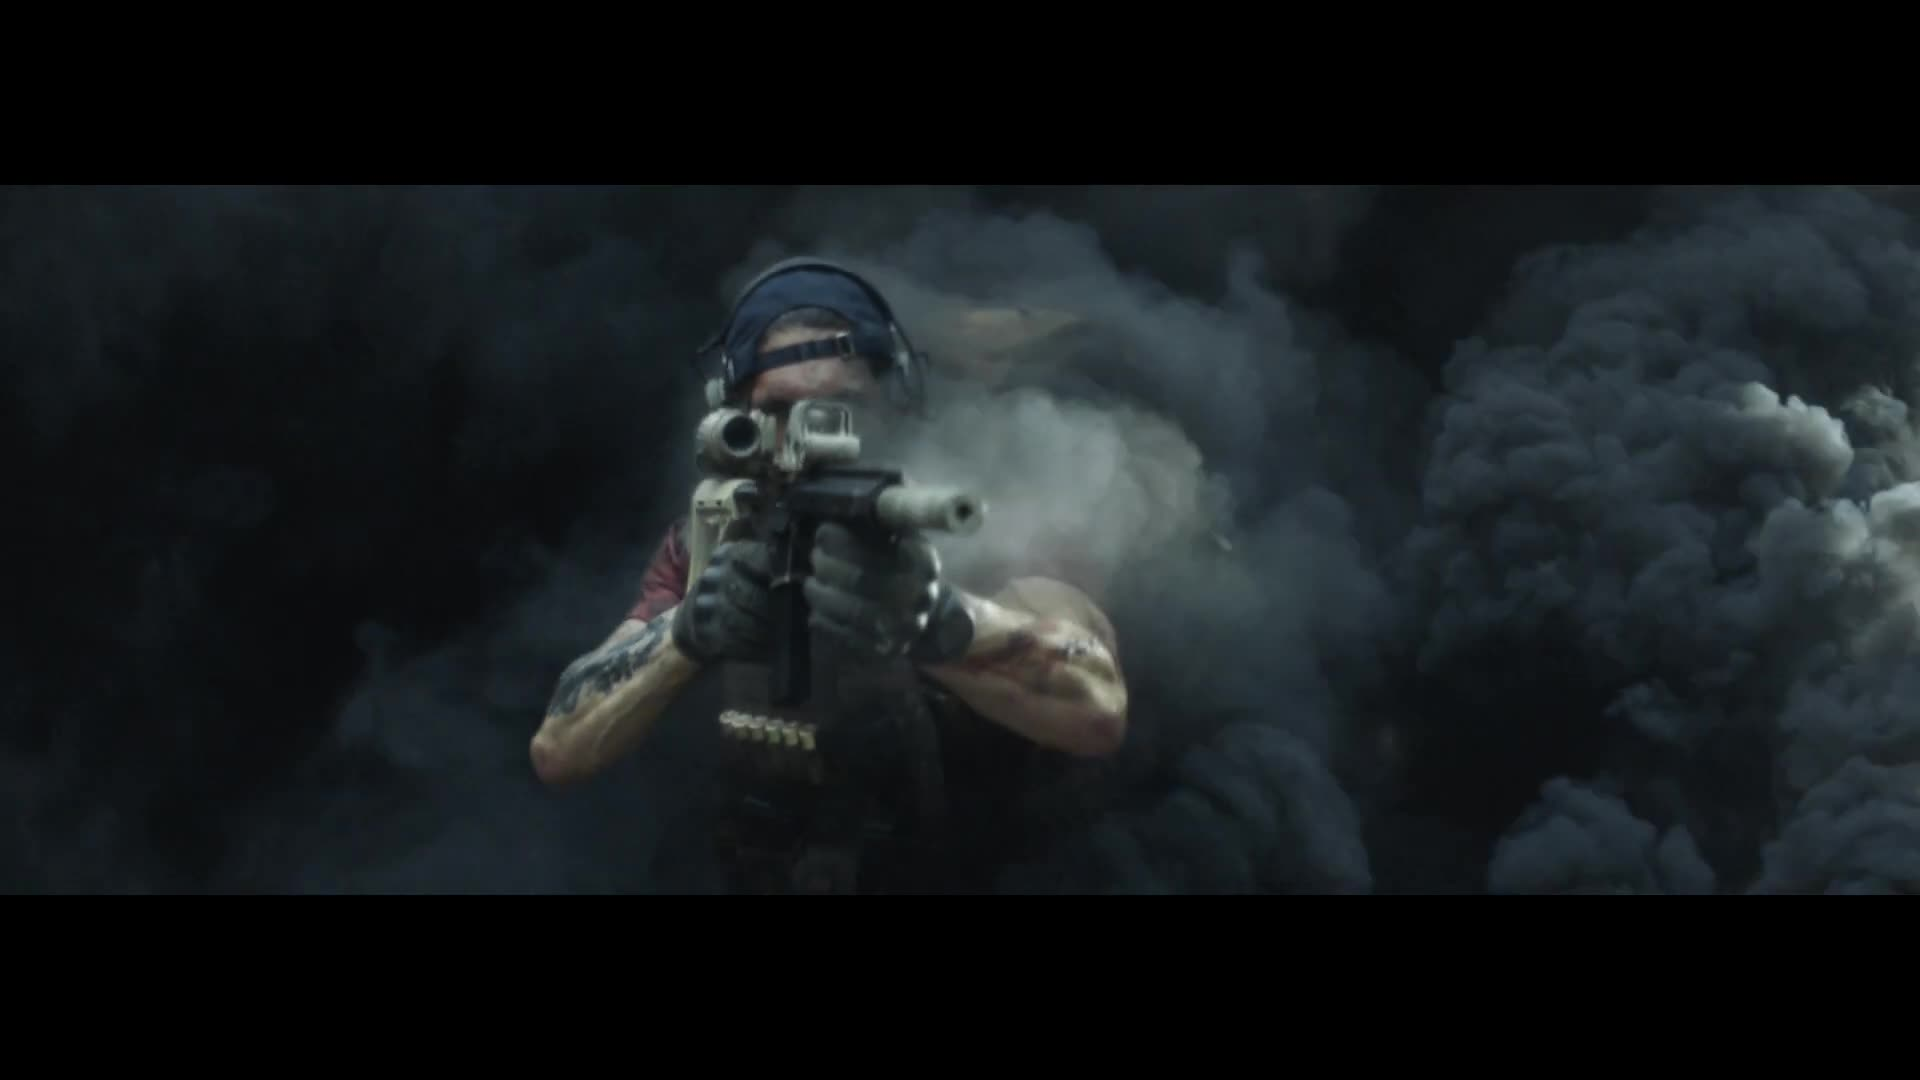 Trailer, Ubisoft, actionspiel, Tom Clancy, Ghost Recon, Ghost Recon Breakpoint, Breakpoint